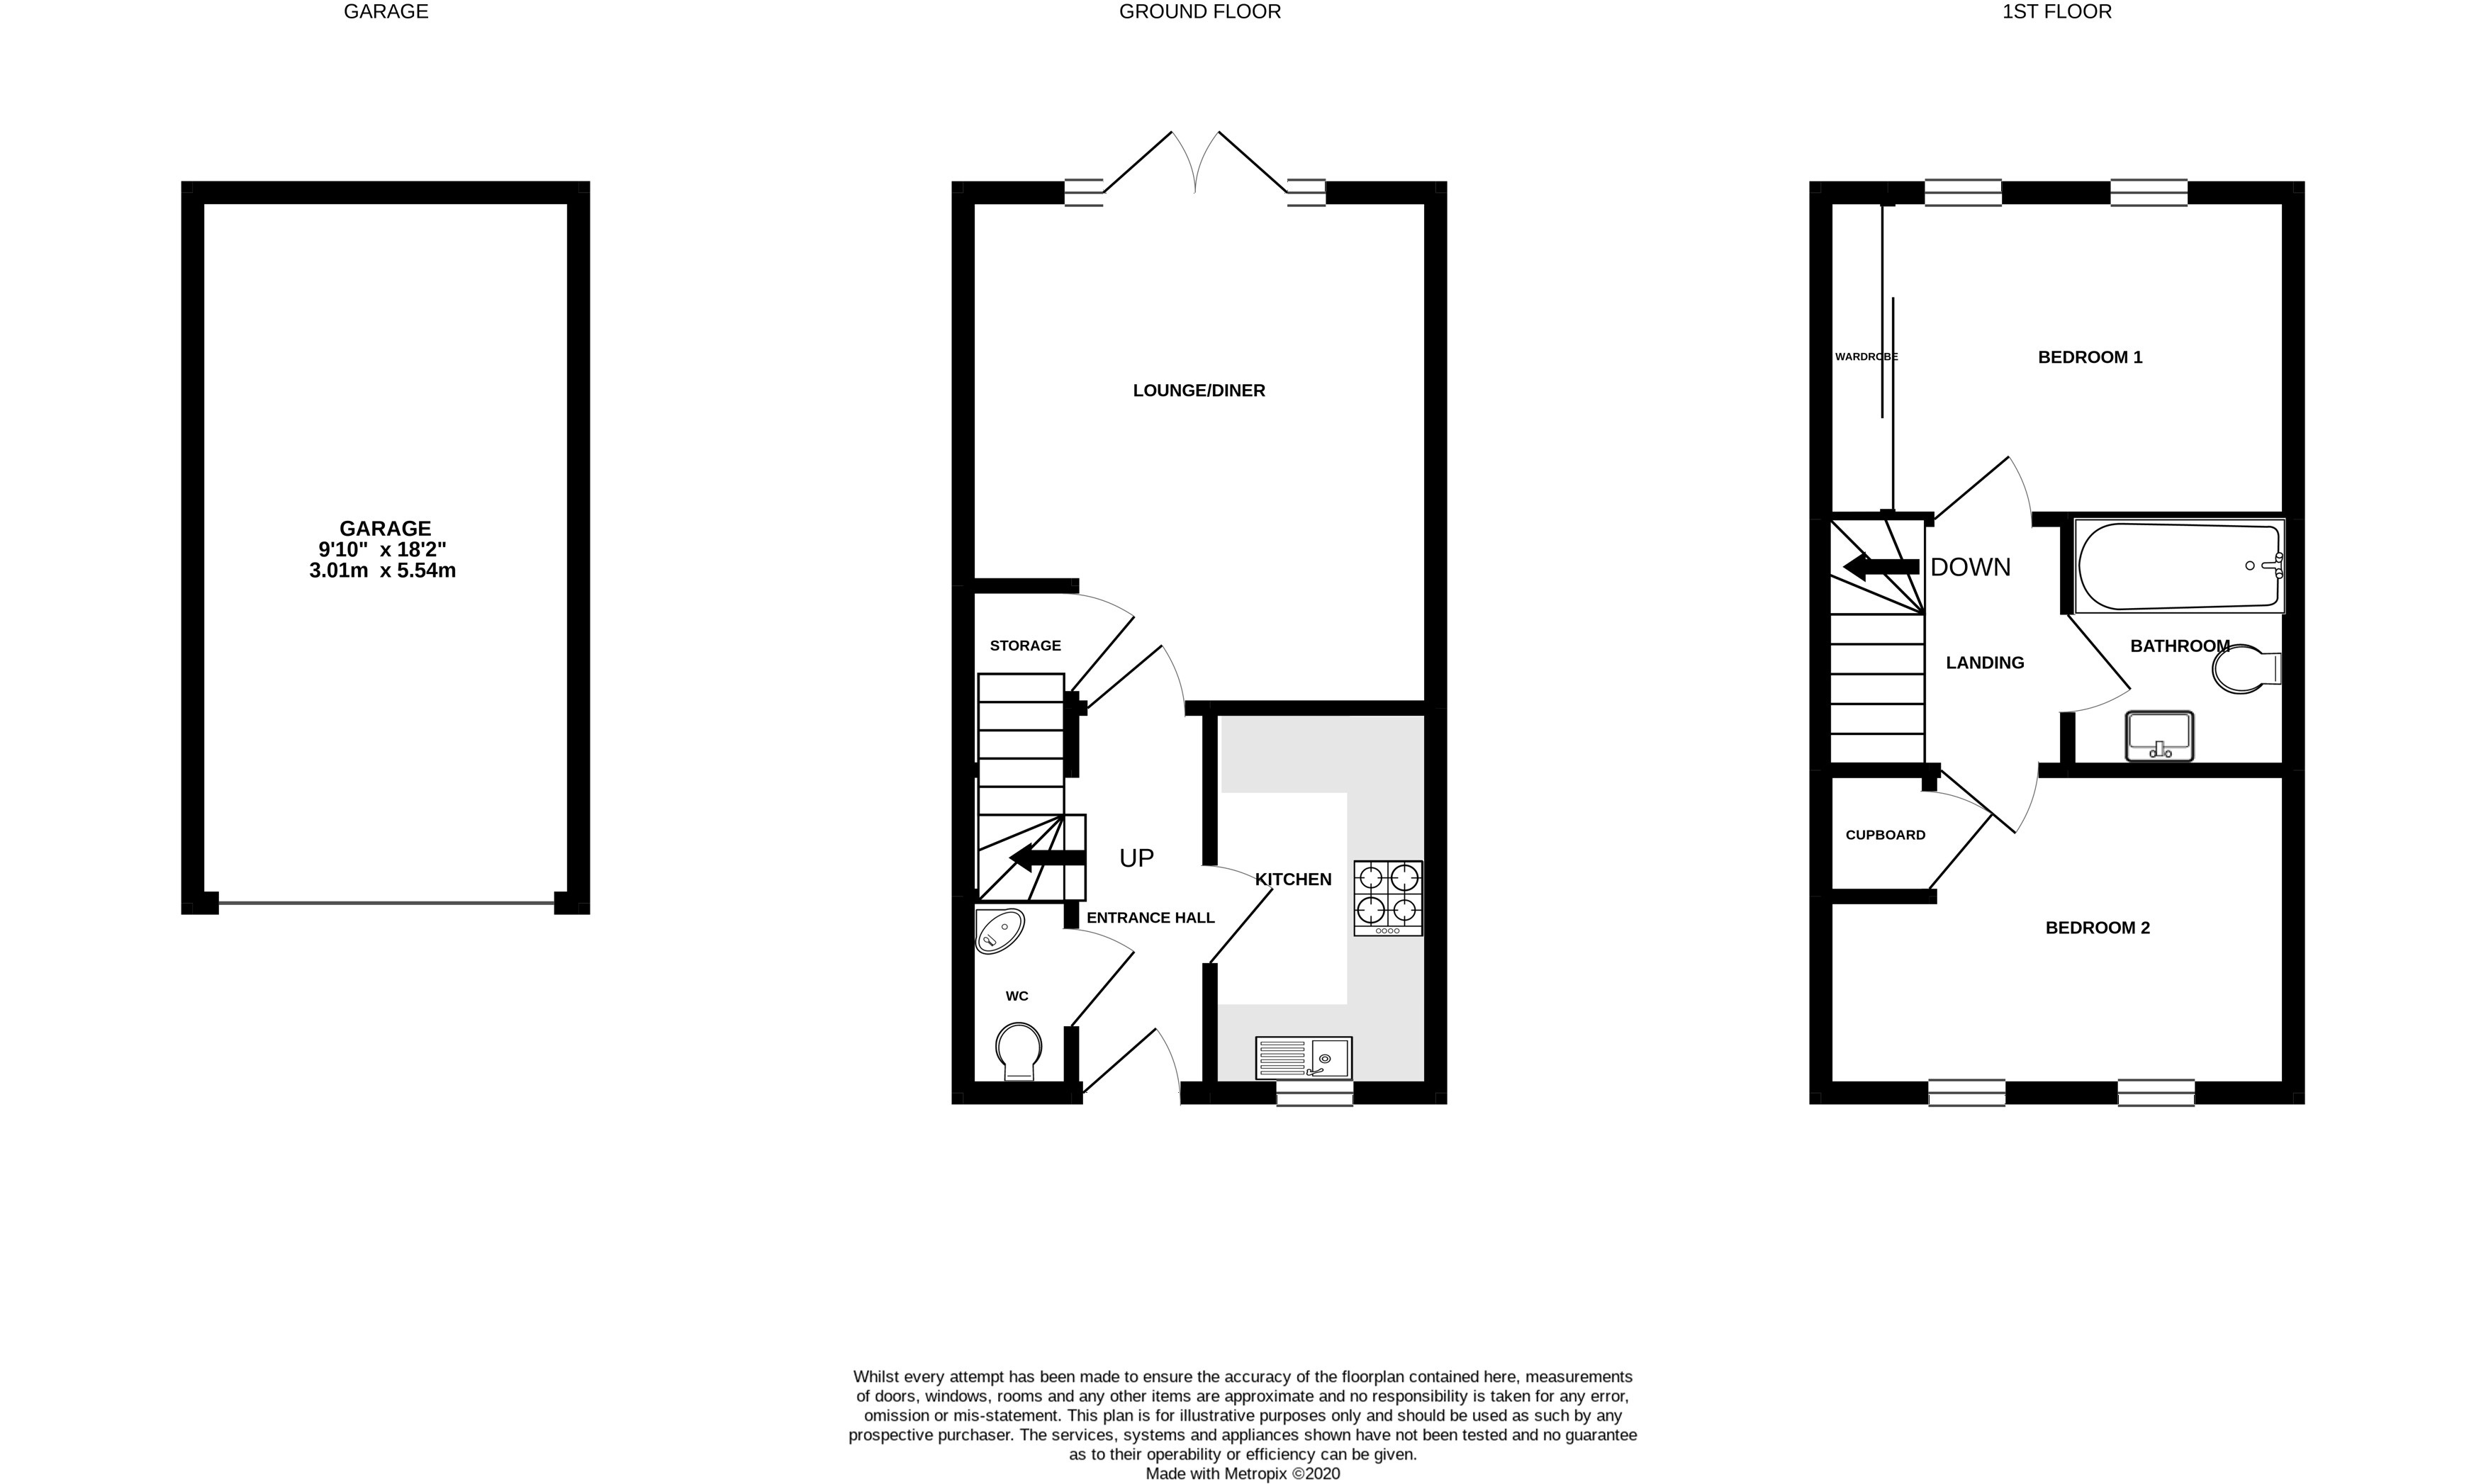 Floorplans For Chelford, Macclesfield, Cheshire